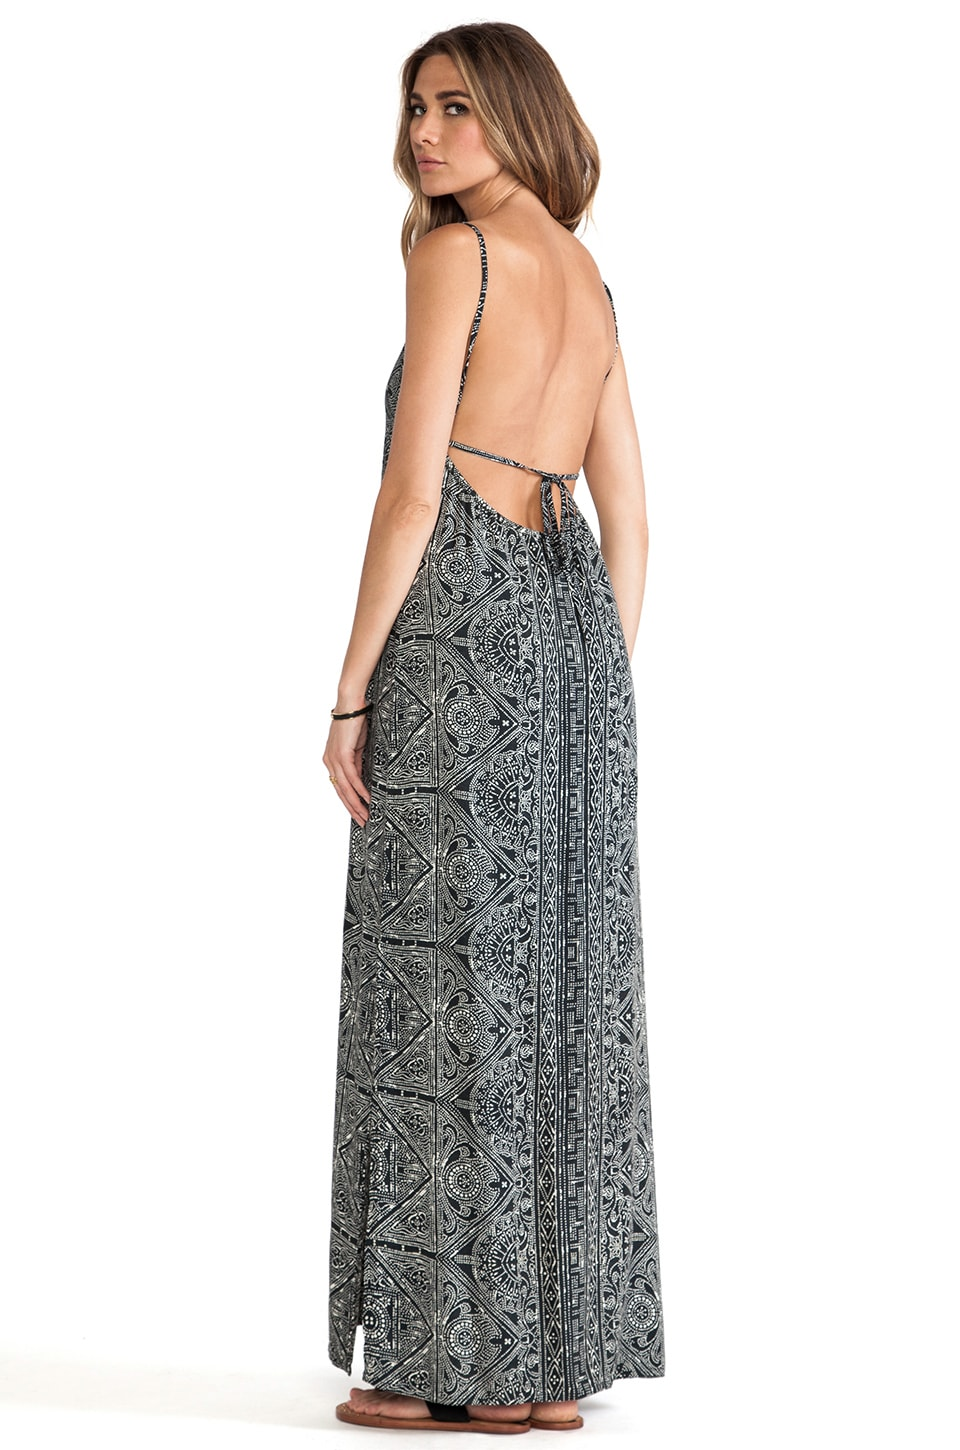 Cleobella Haven Maxi Dress in Black Batik